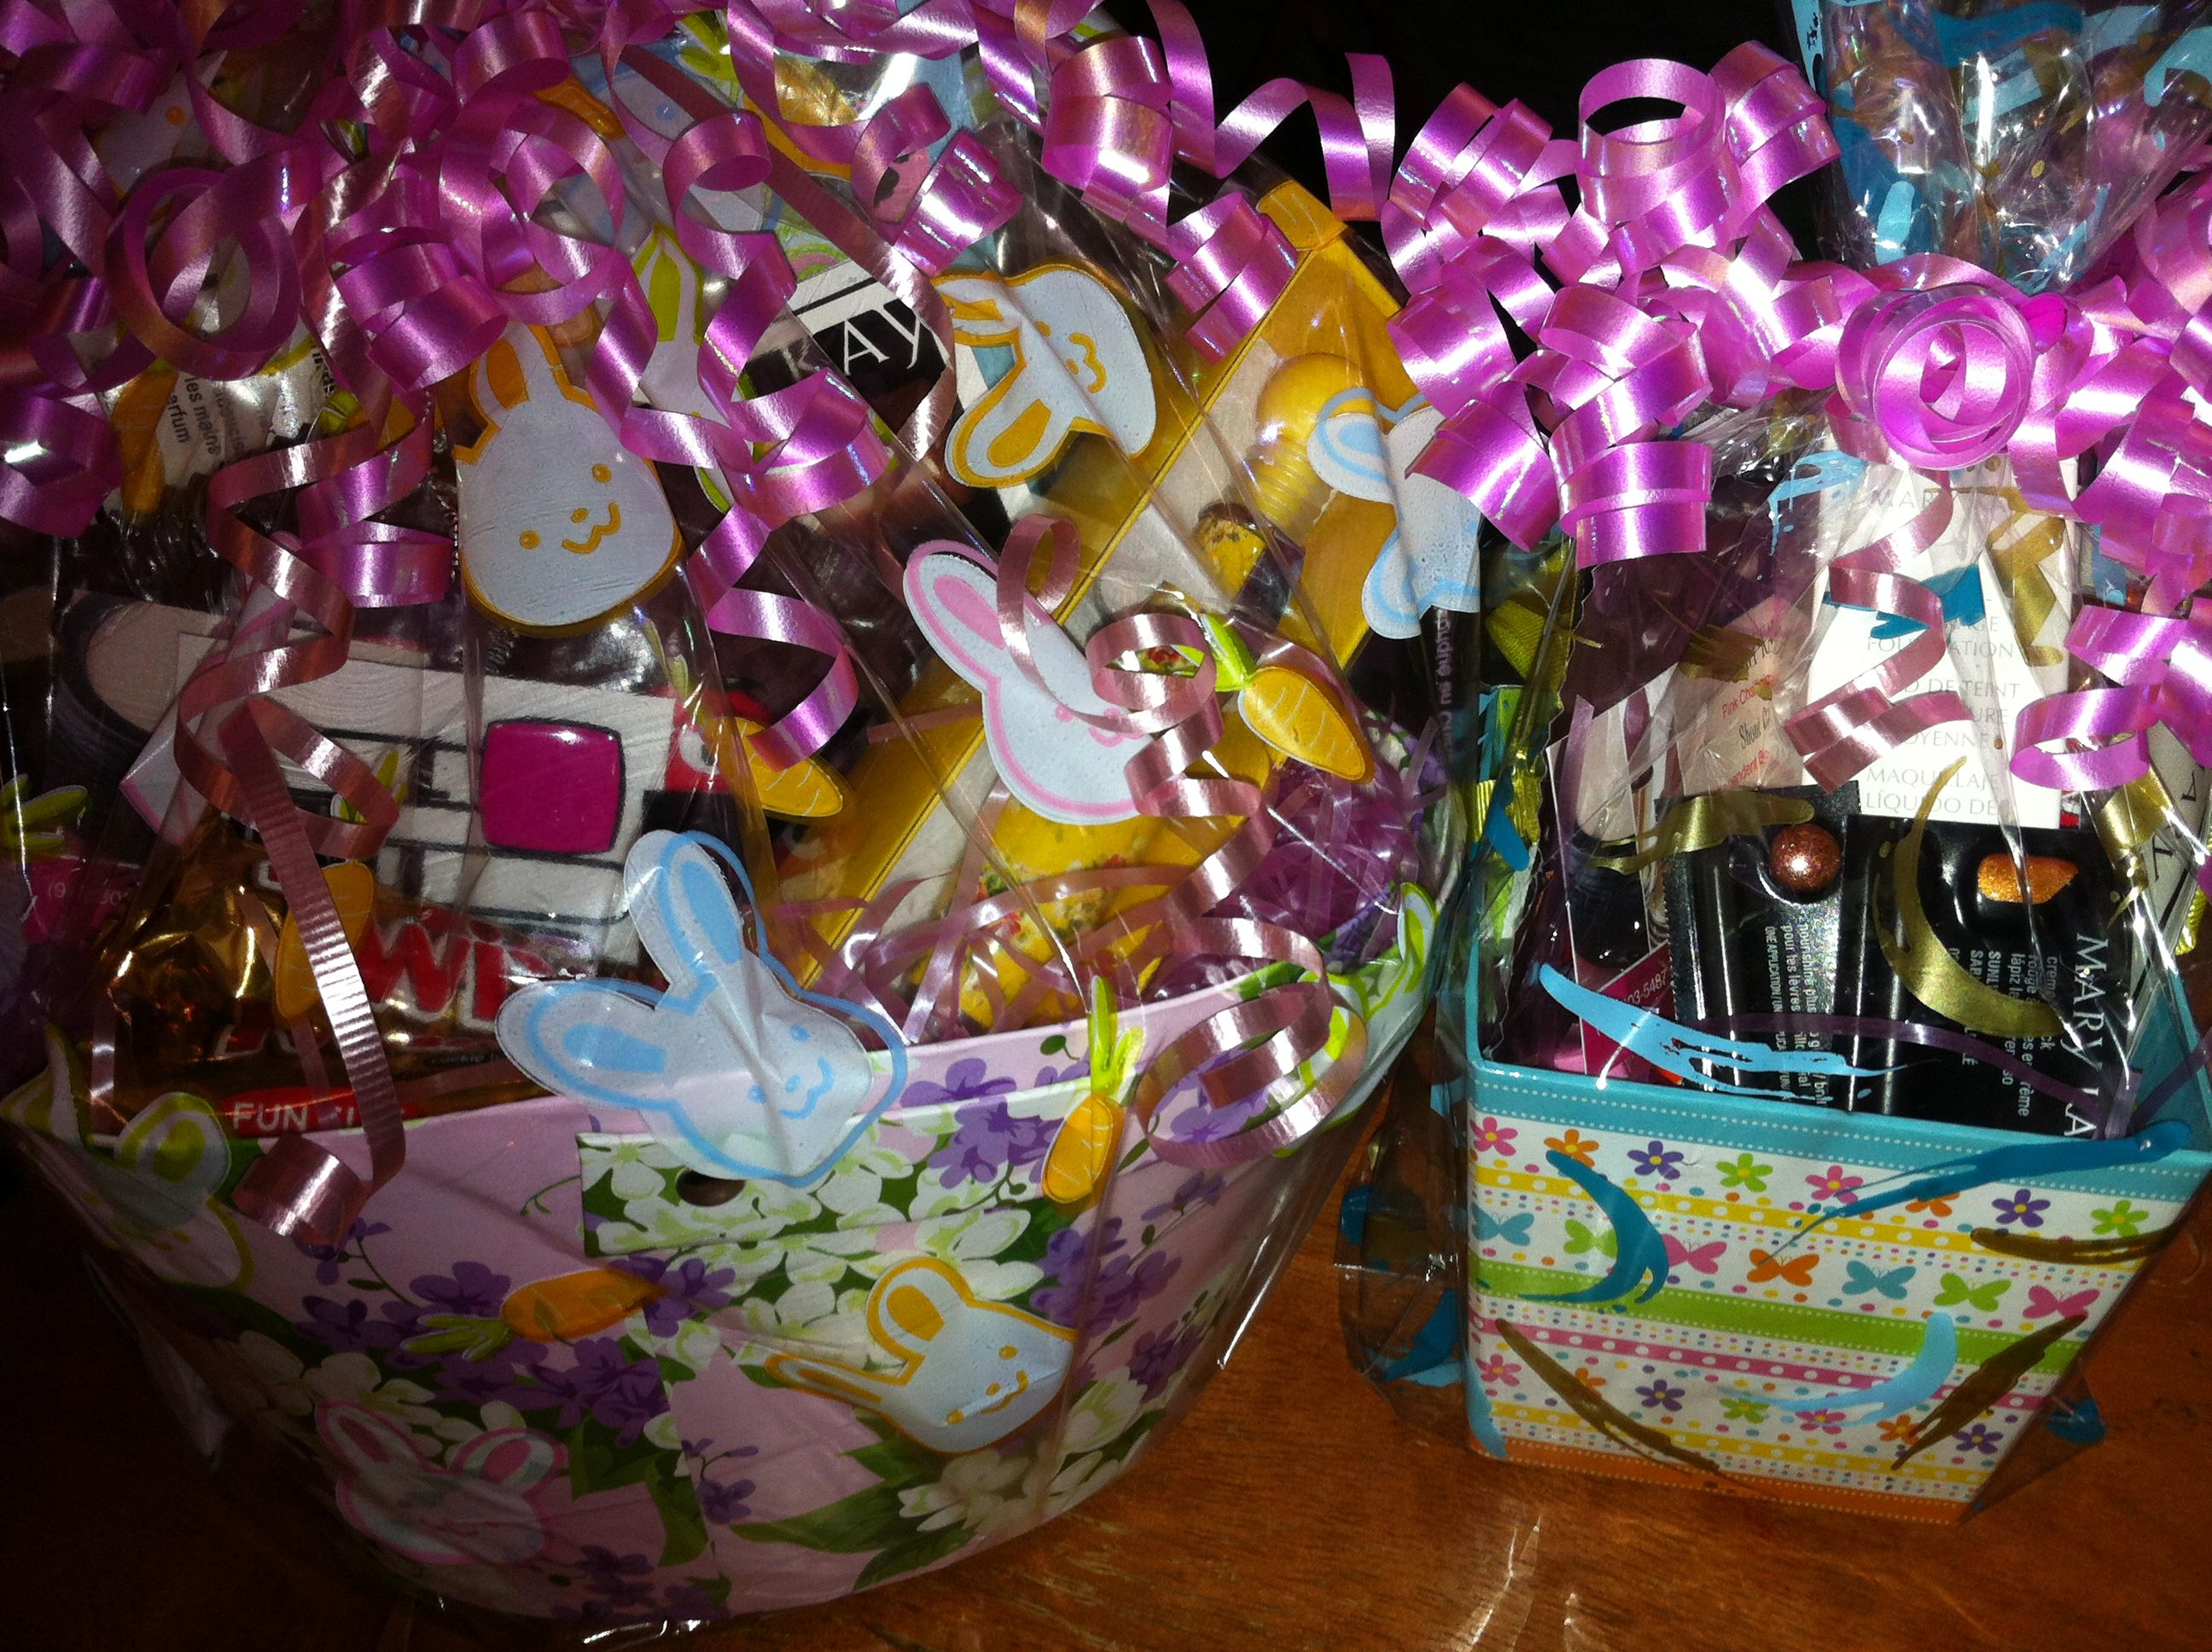 Motherus Day Gift BasketCustom made gift baskets to fit any